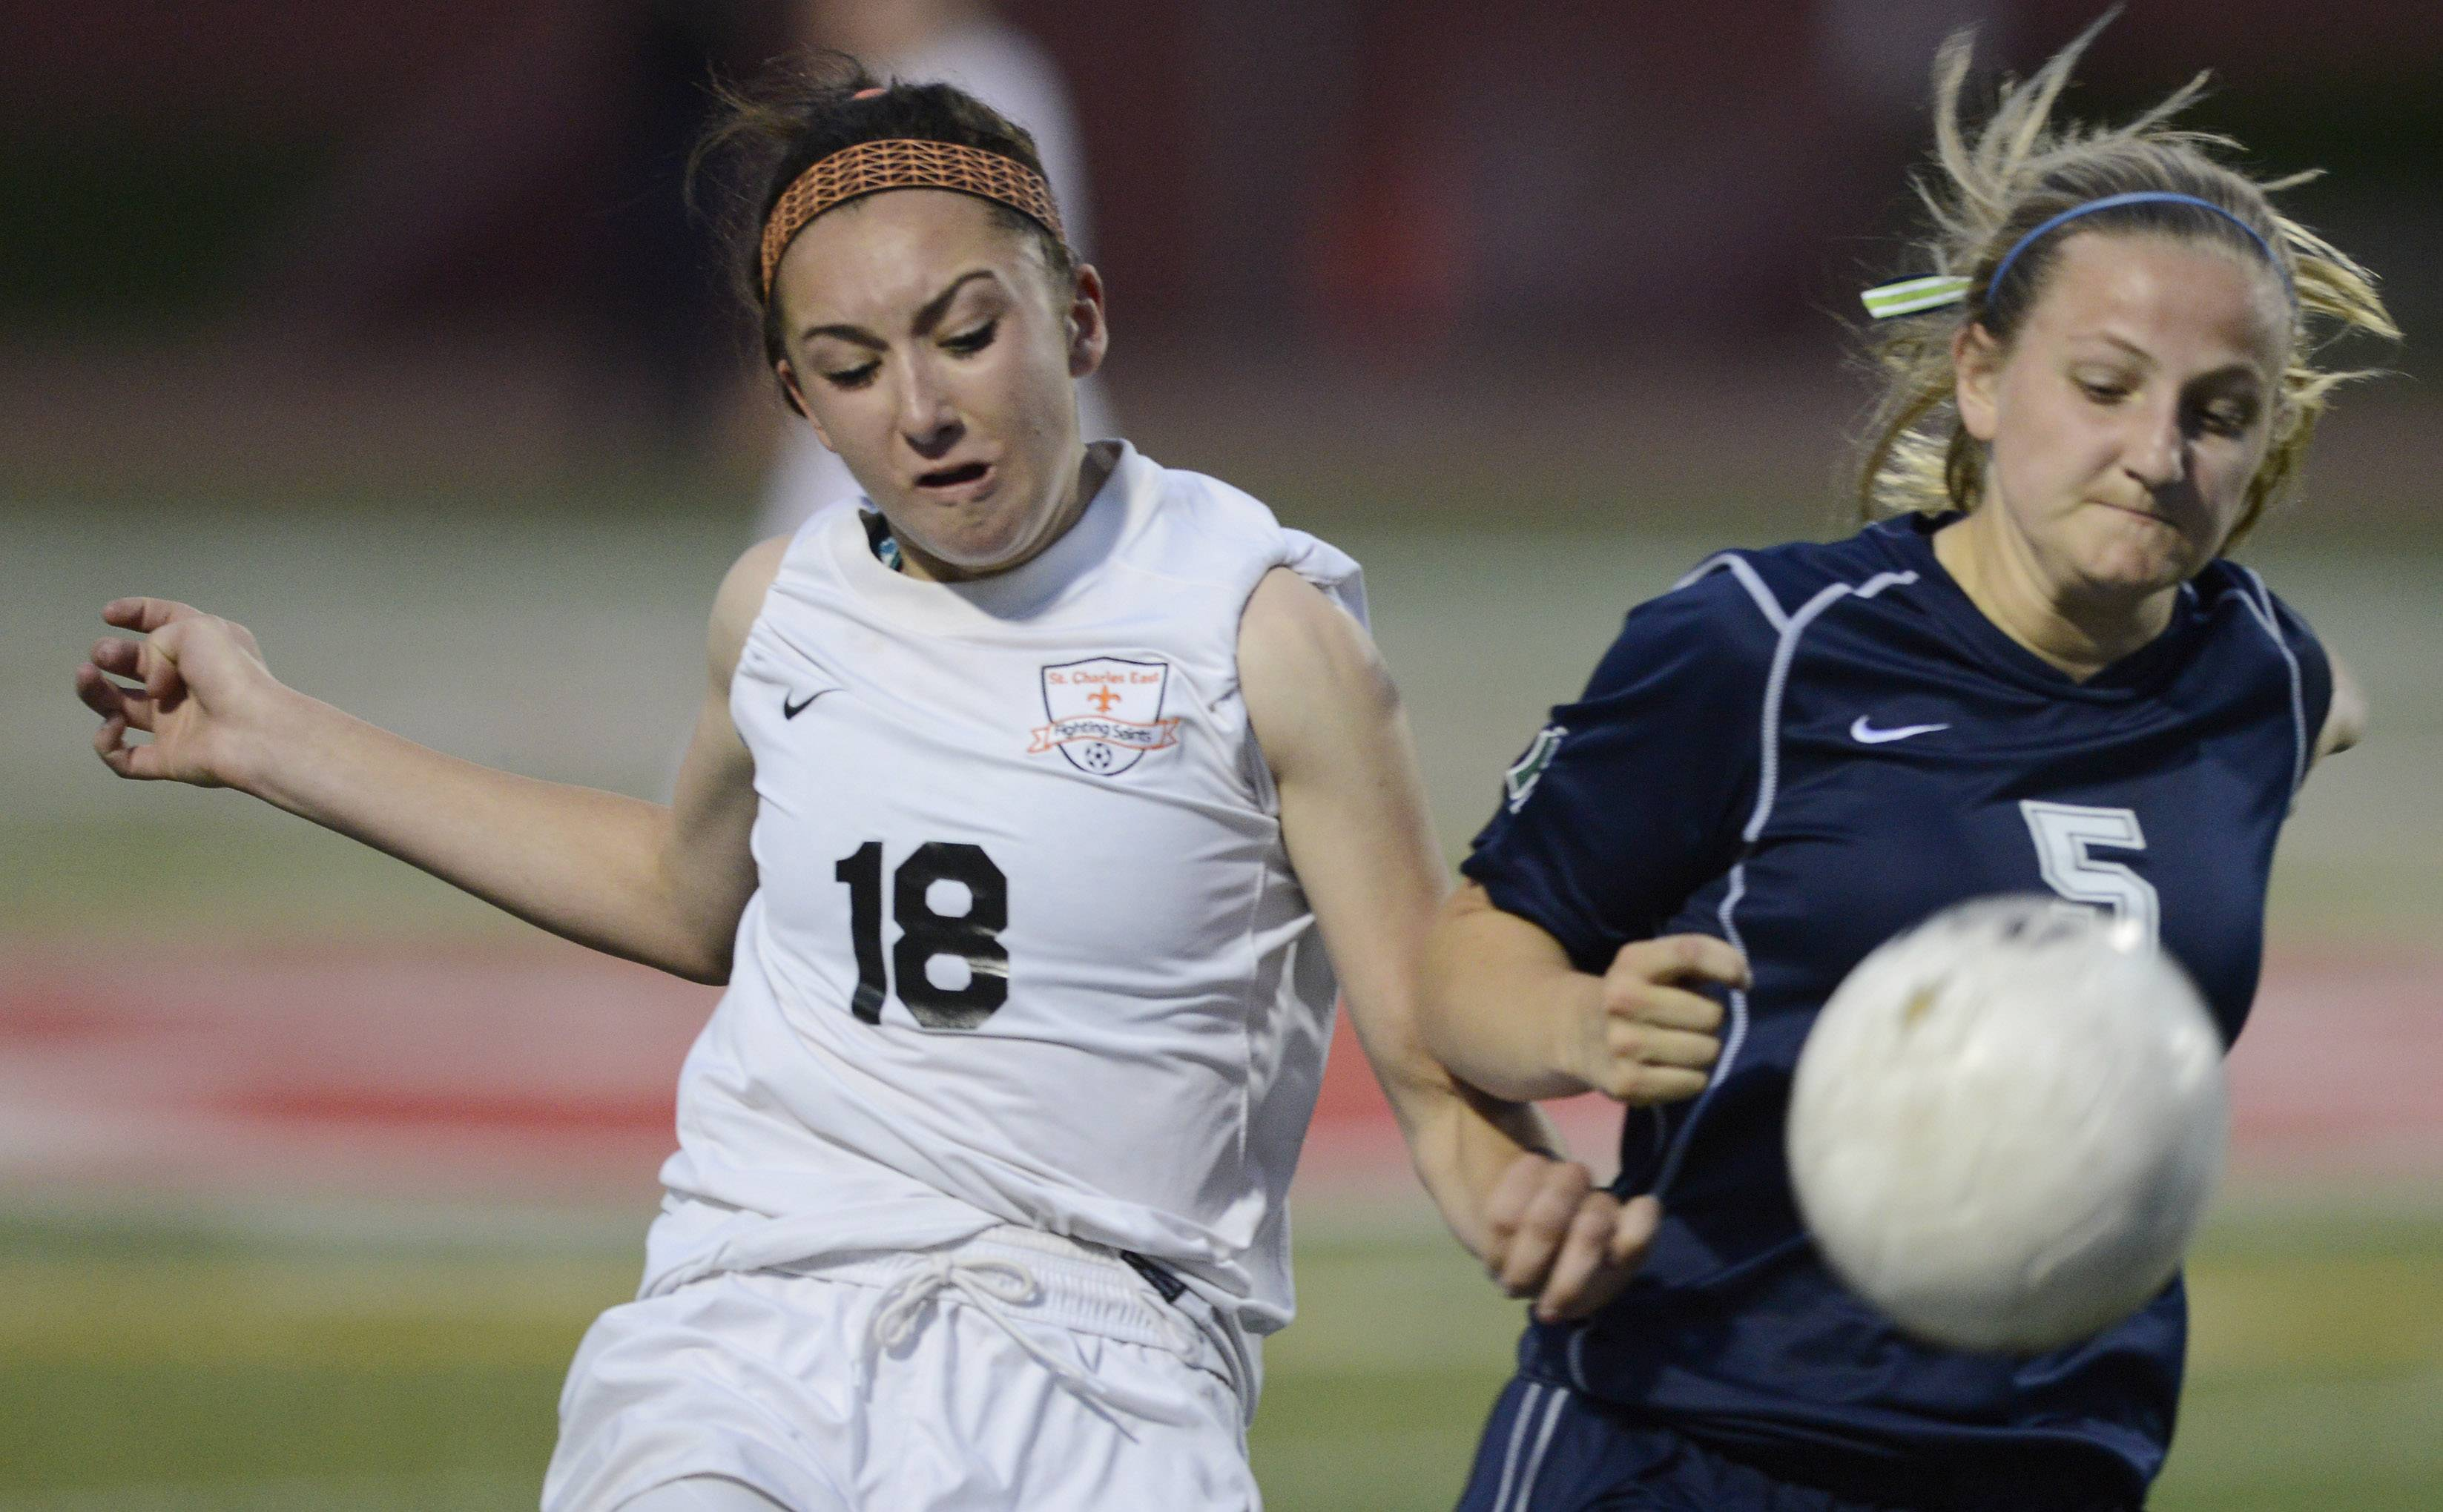 Mallory Moltenhauler, left, of St. Charles East makes contact Maggie Armstrong of New Trier during the girls soccer Class 3A state final at North Central College in Naperville Saturday.